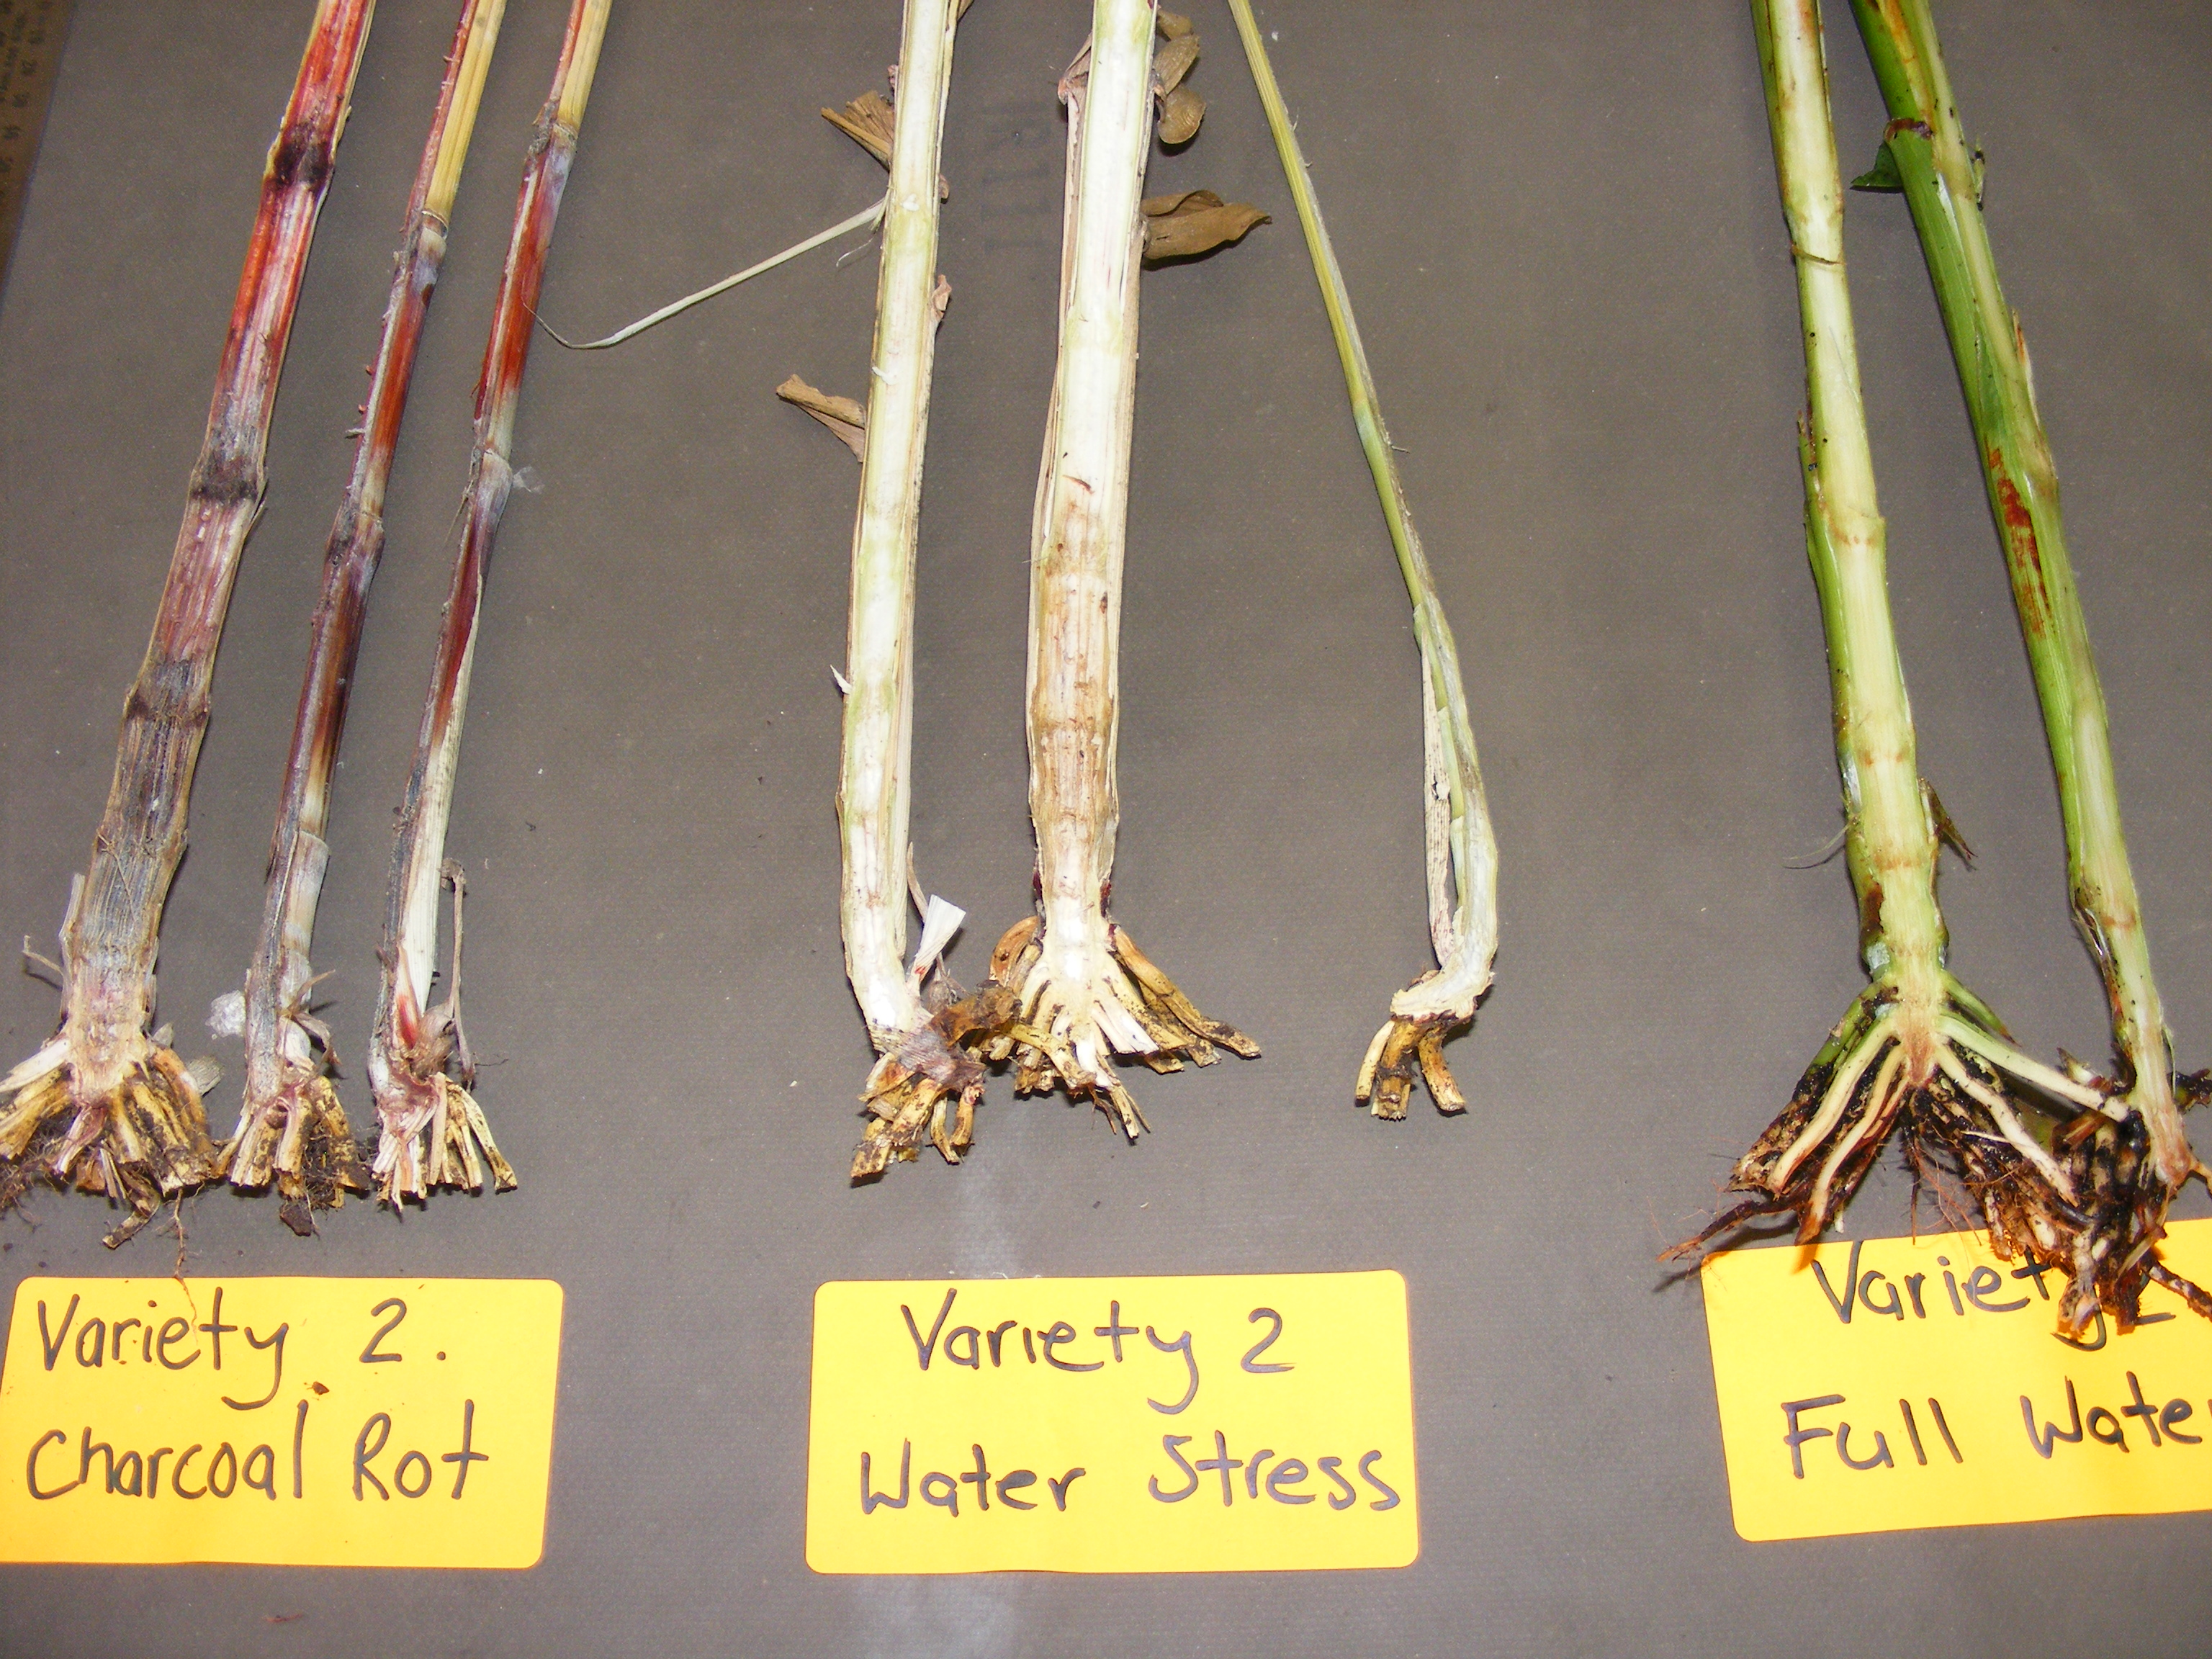 Three sets of plant samples of the same variety, showing Charcoal Rot (reddish-purple-black stems), Water Stress (pale, white stems) and Full Water (healthy green stems).